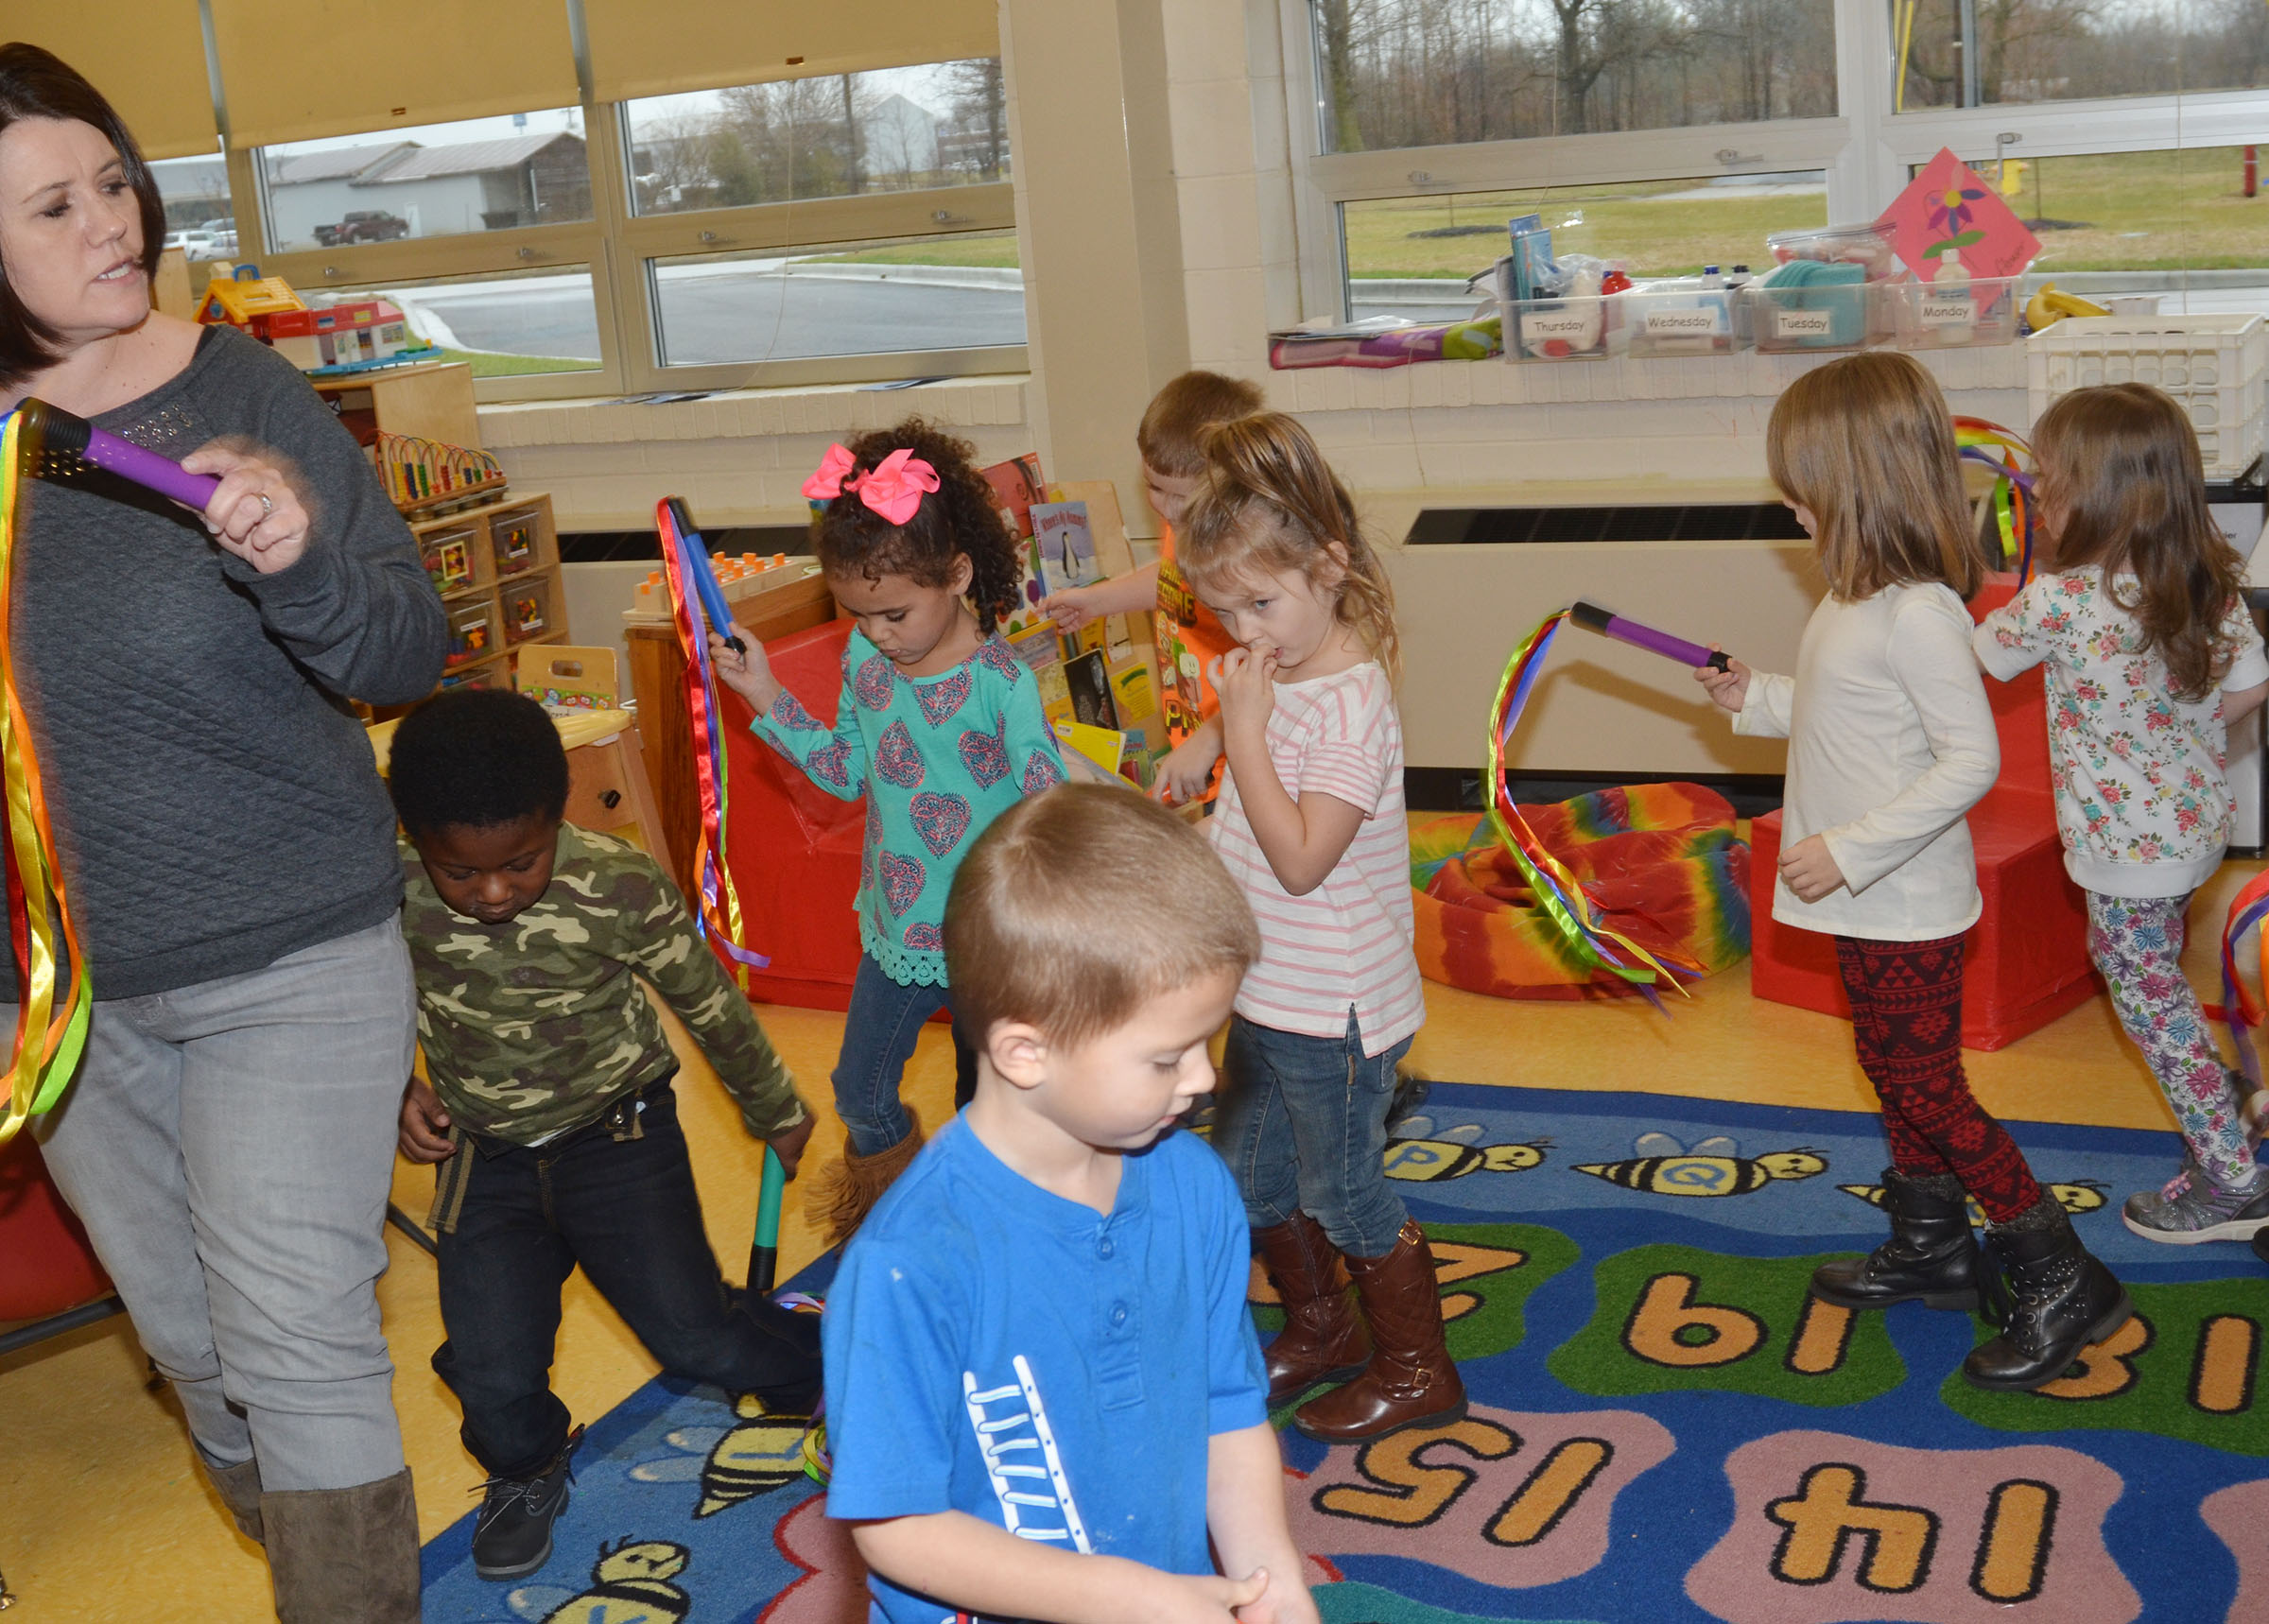 CES preschool teacher Denise Spencer leads her students around the room as they dance together.